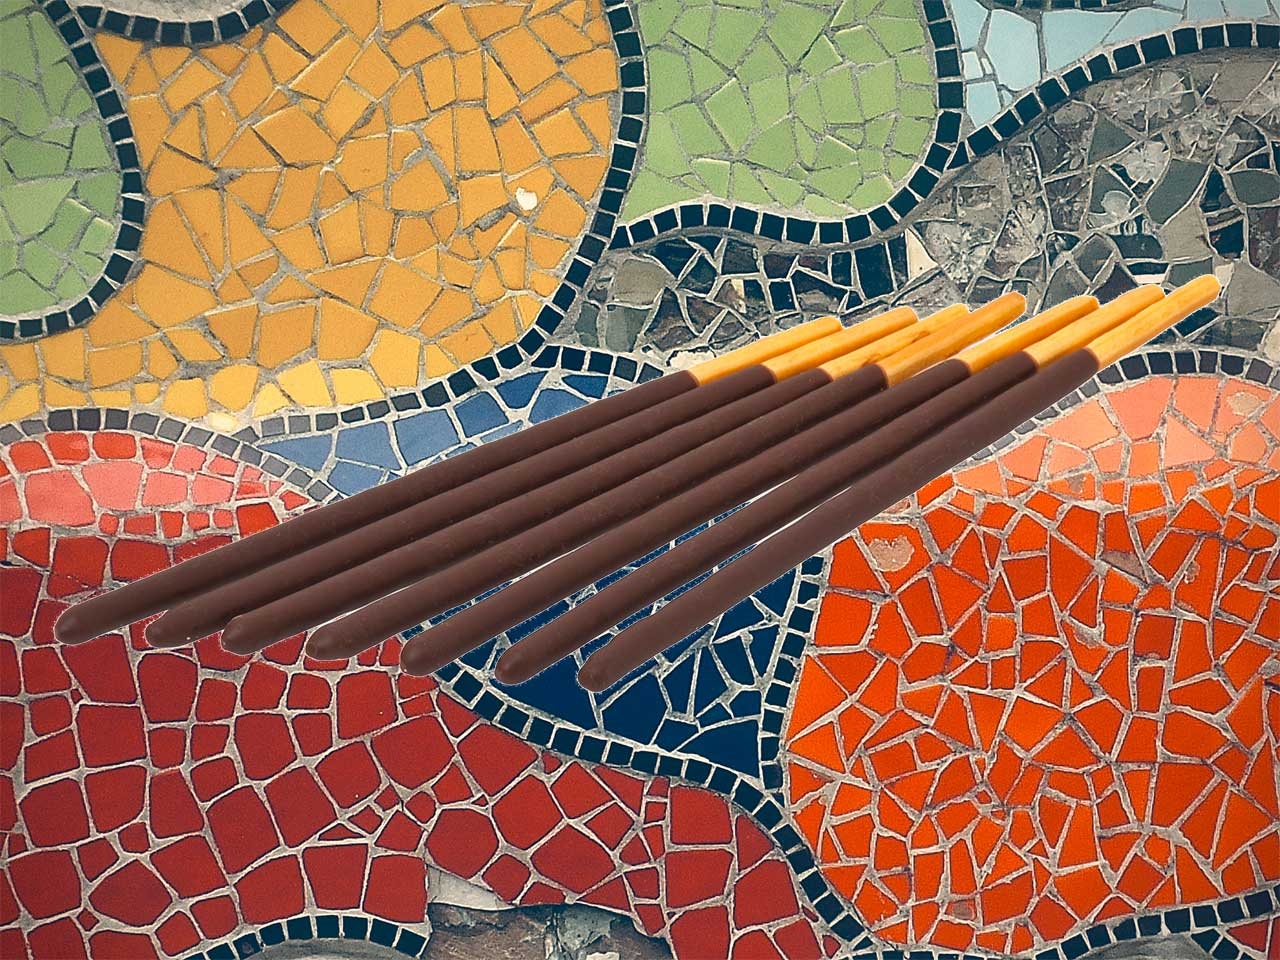 pocky in front of a mosaic